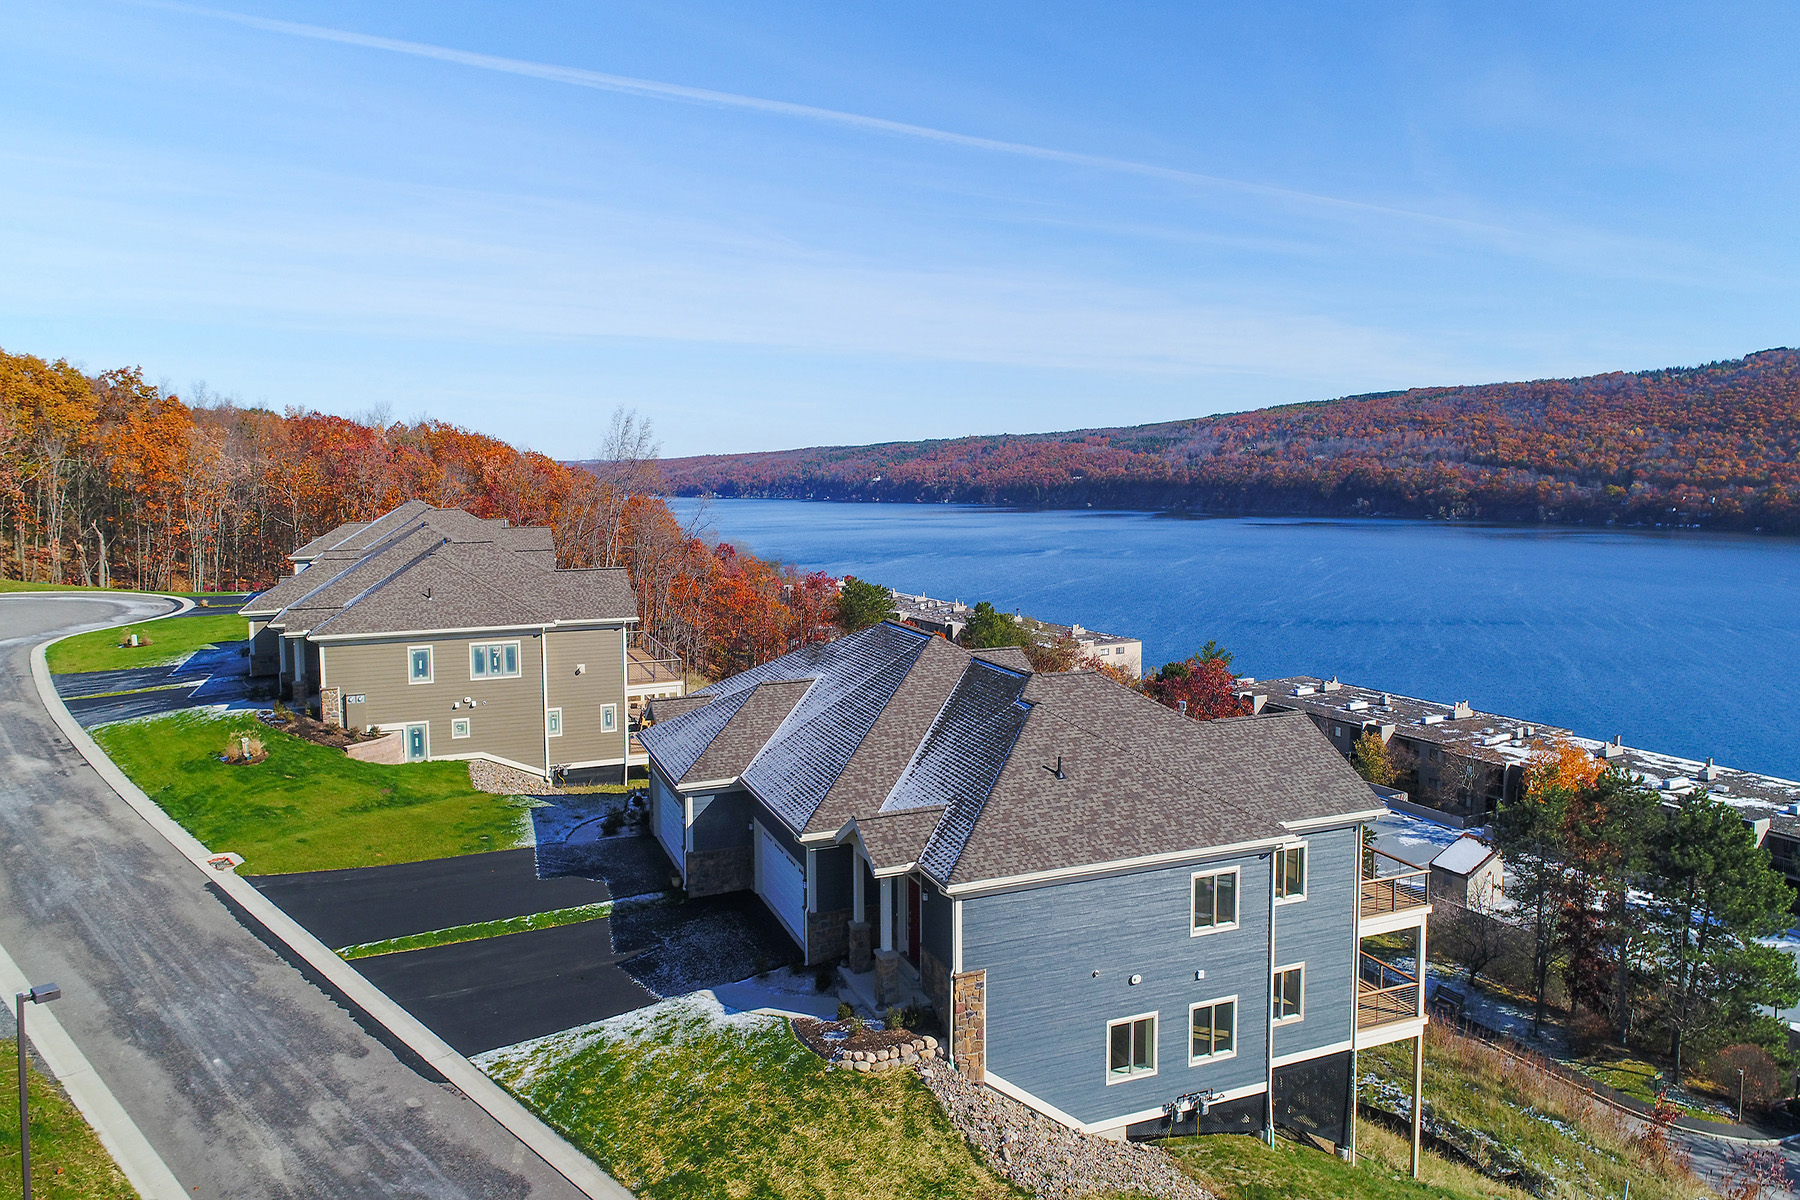 Condominium for Sale at Bristol XV 15B Terrace Drive Canandaigua, New York 14424 United States